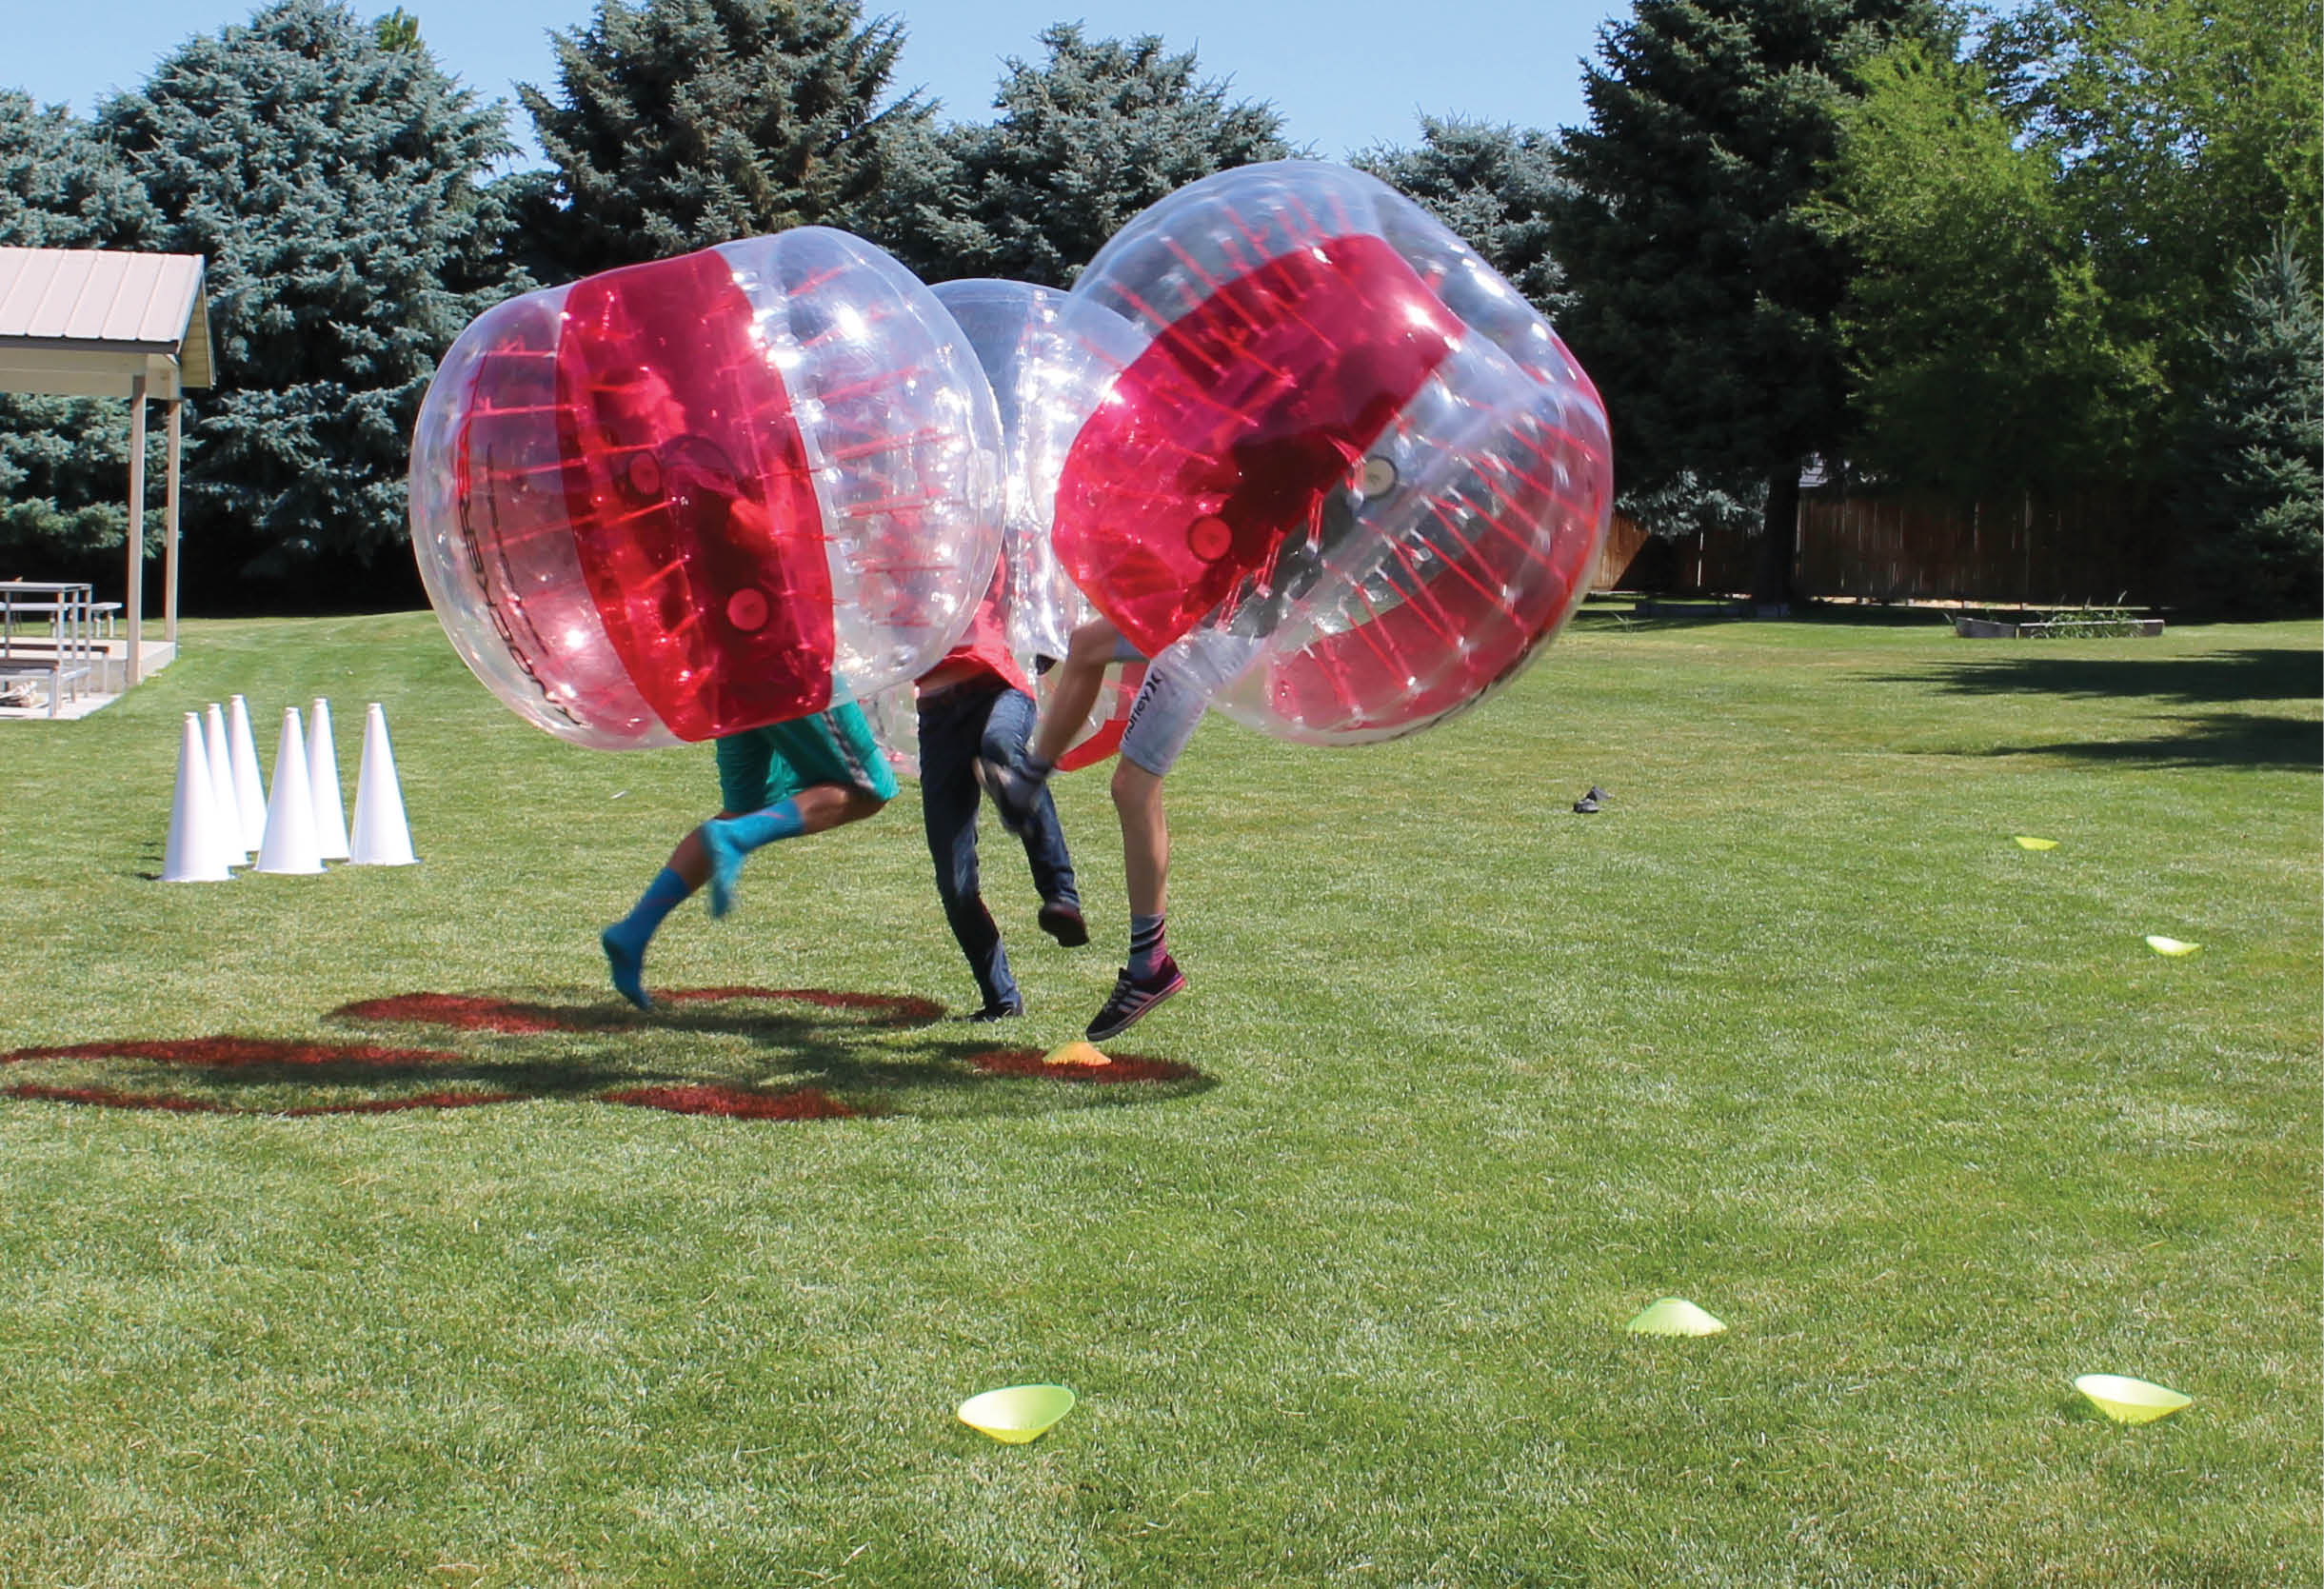 With a knockerball you can hit your opponent and neither of you will get hurt.